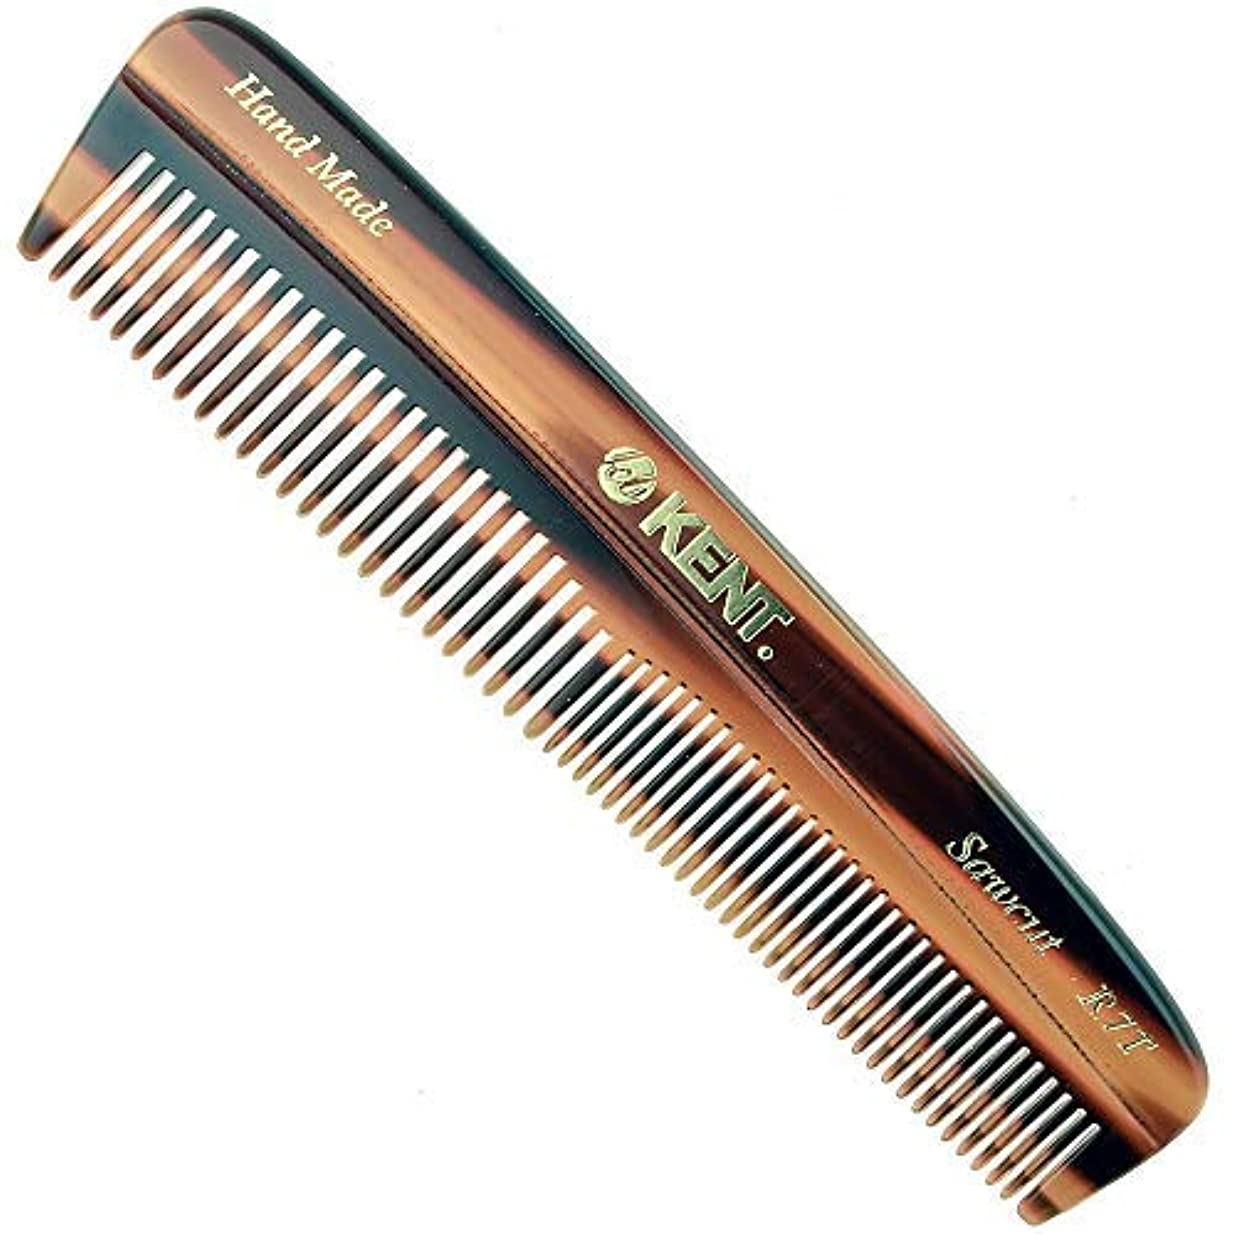 暗殺するスカープ除外するKent R7T - Men's/Women's Coarse and Fine Toothed Small Travel Pocket Comb 130mm/5.63